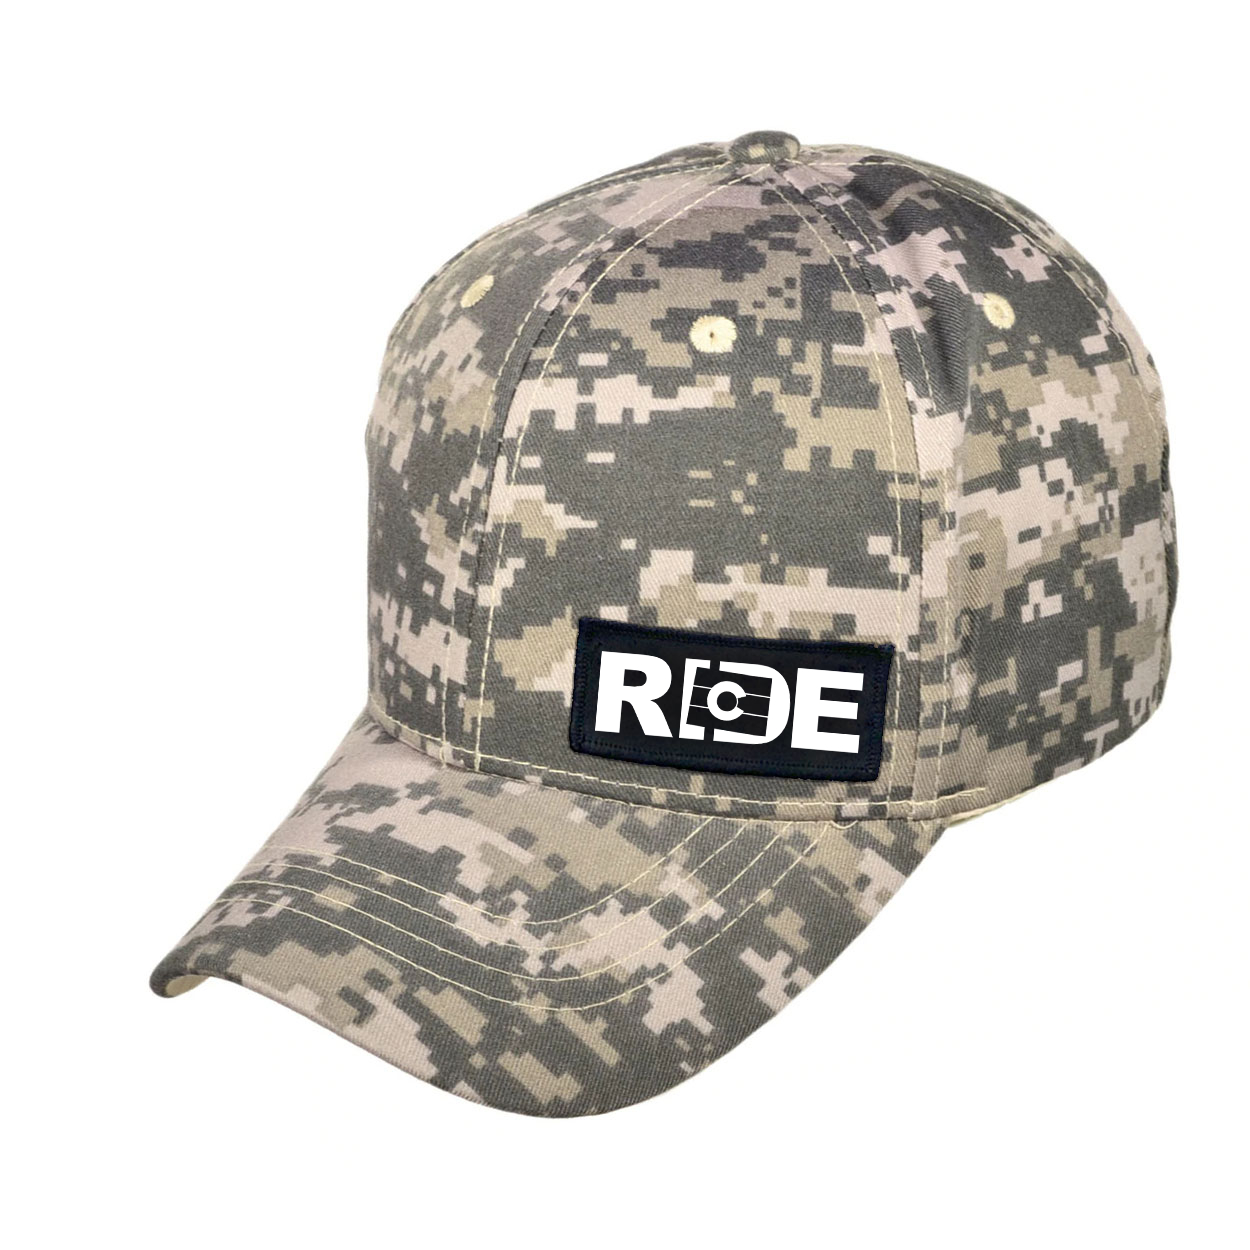 Ride Colorado Night Out Woven Patch Hat Digital Camo (White Logo)